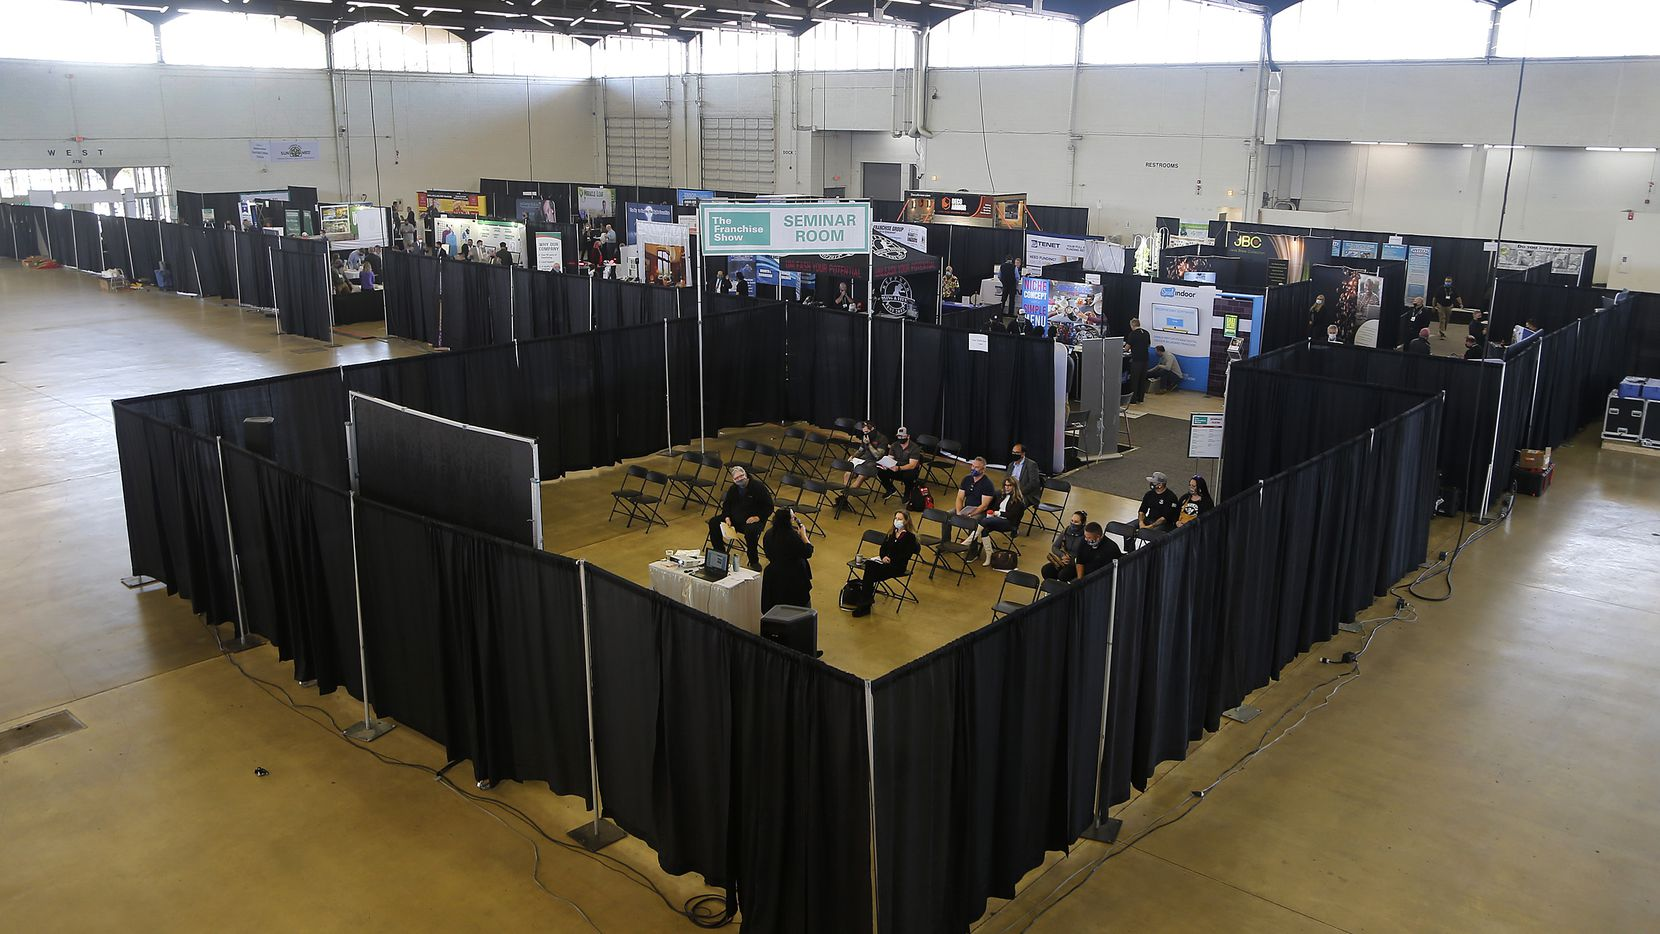 The Franchise Show is a conference for local entrepeneurs interested in starting their own franchise business in North Texas being held at the Dallas Market Hall in Dallas on Saturday, March 20, 2021.  (Stewart F. House/Special Contributor)